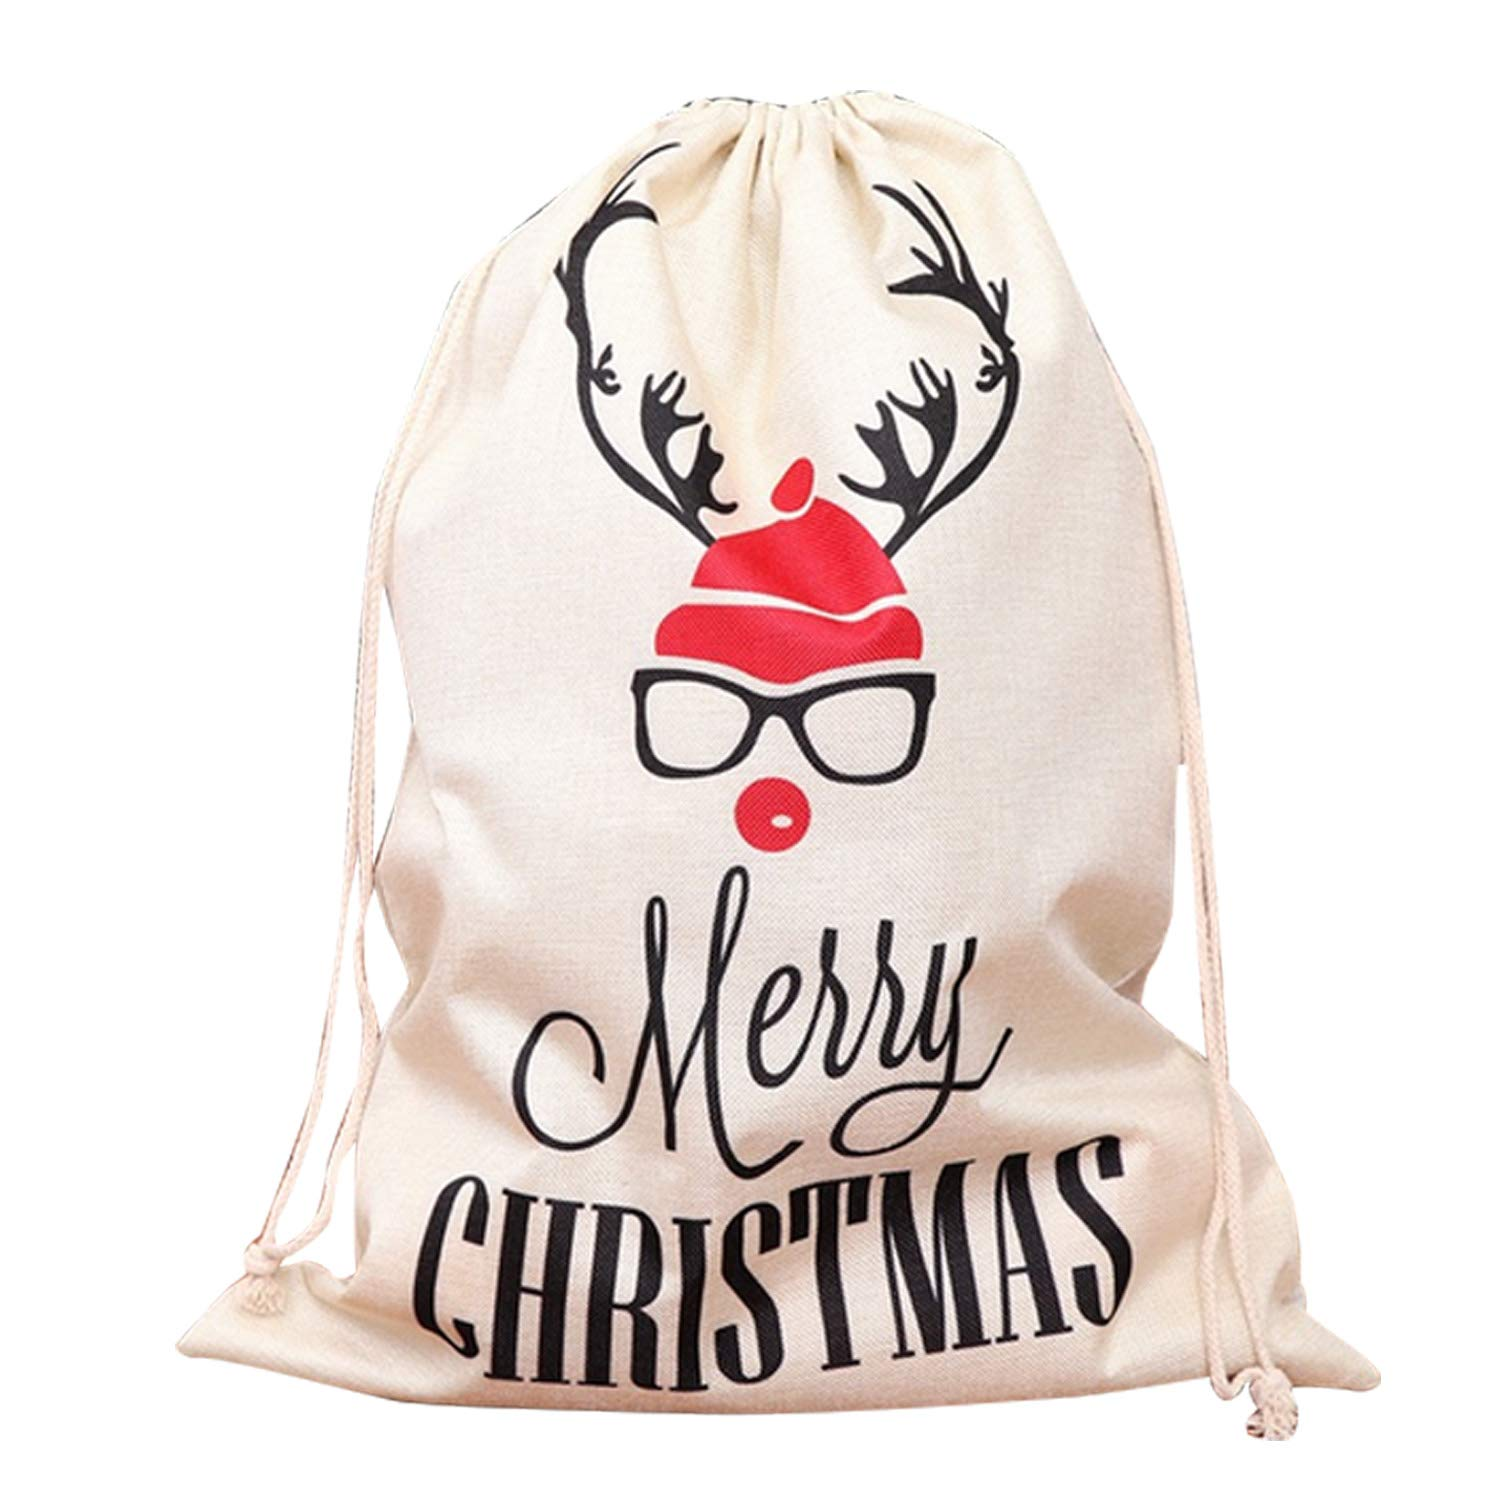 Cute Christmas Xmas Santa Sack Special Delivery Present Bags with Drawstring Closure Extra Large Size 25.59 x 18.50inch Style A Gosearca